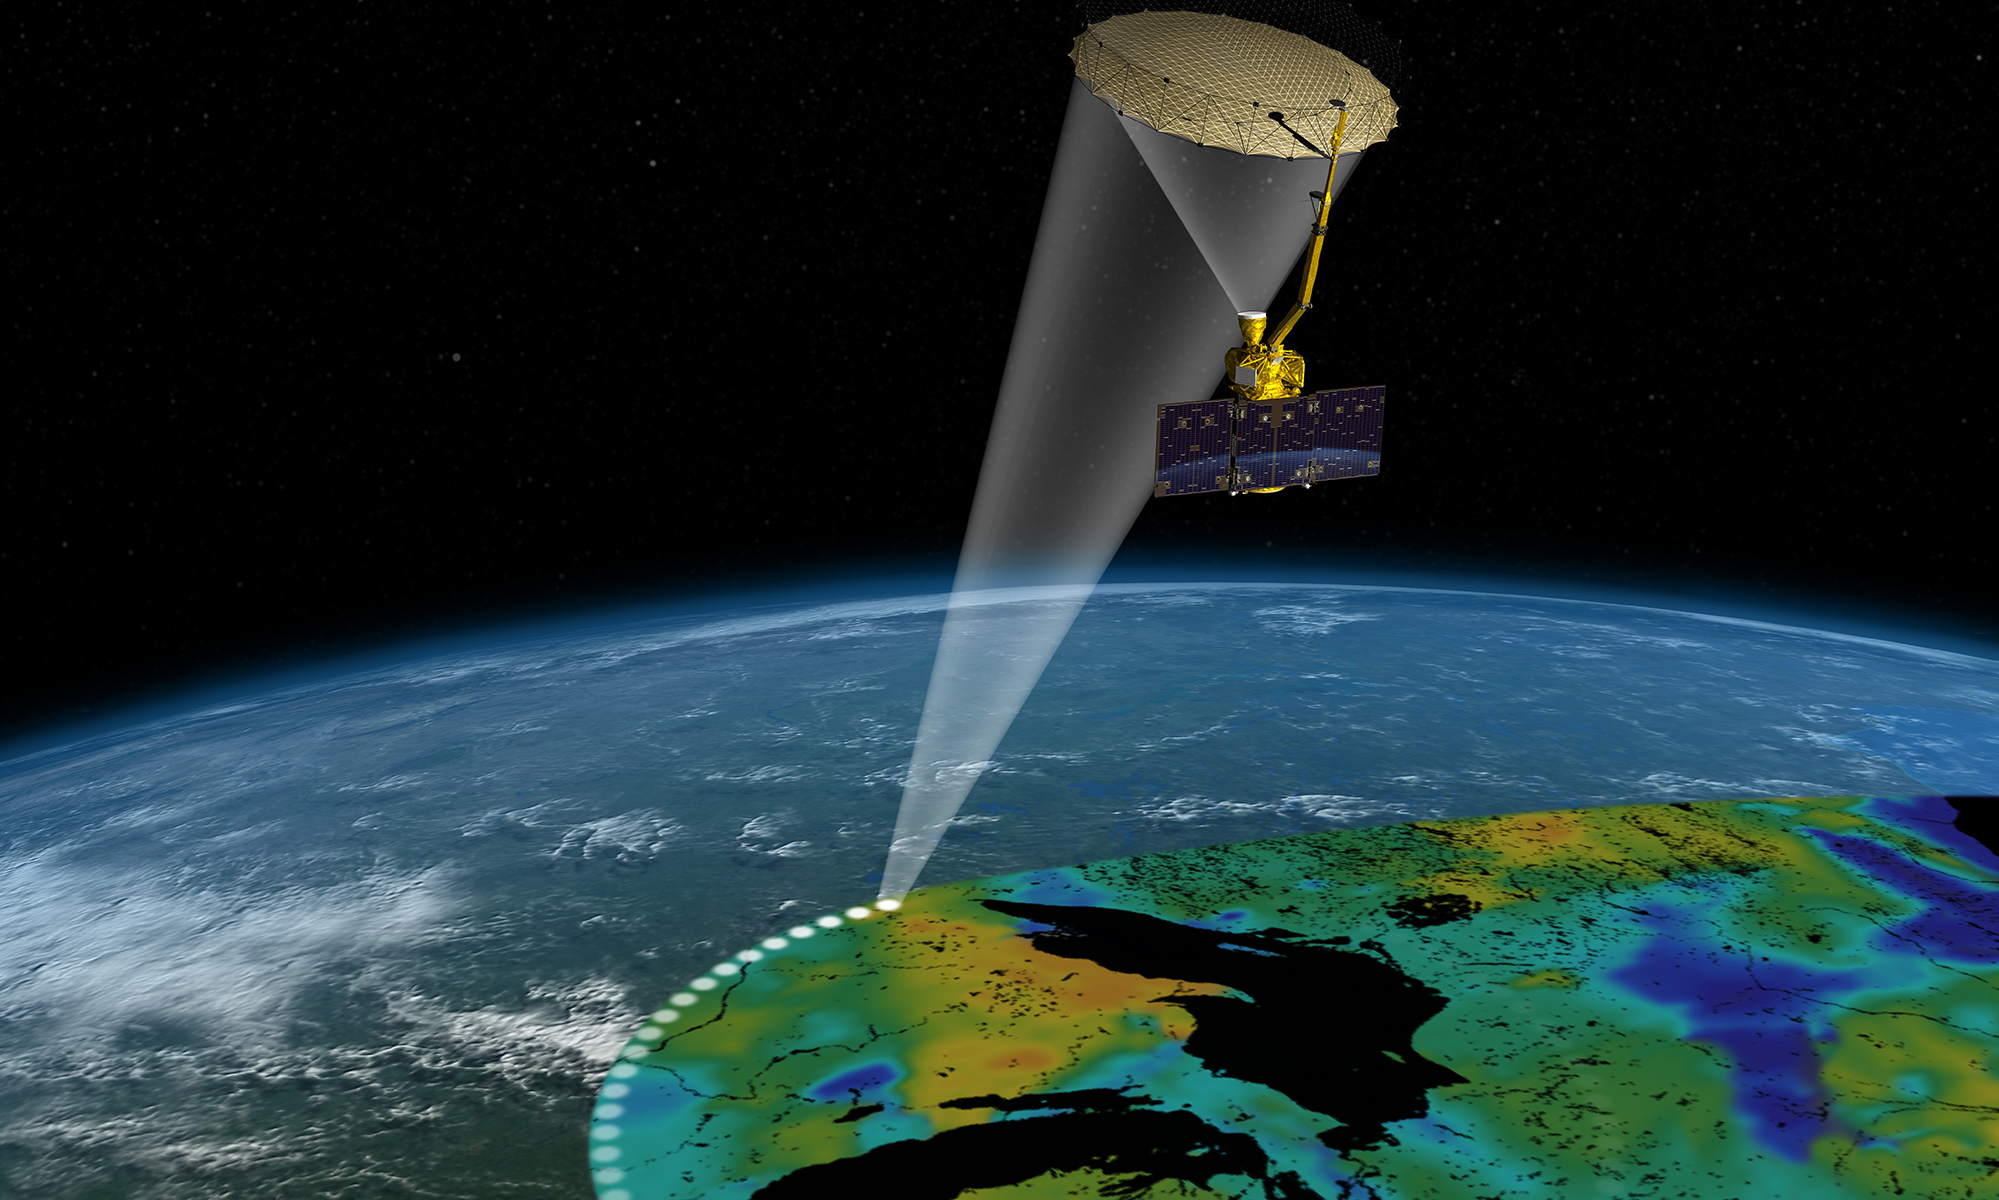 Artist's rendering of the Soil Moisture Active Passive satellite. The width of the region scanned on Earth's surface during each orbit is about 620 miles.